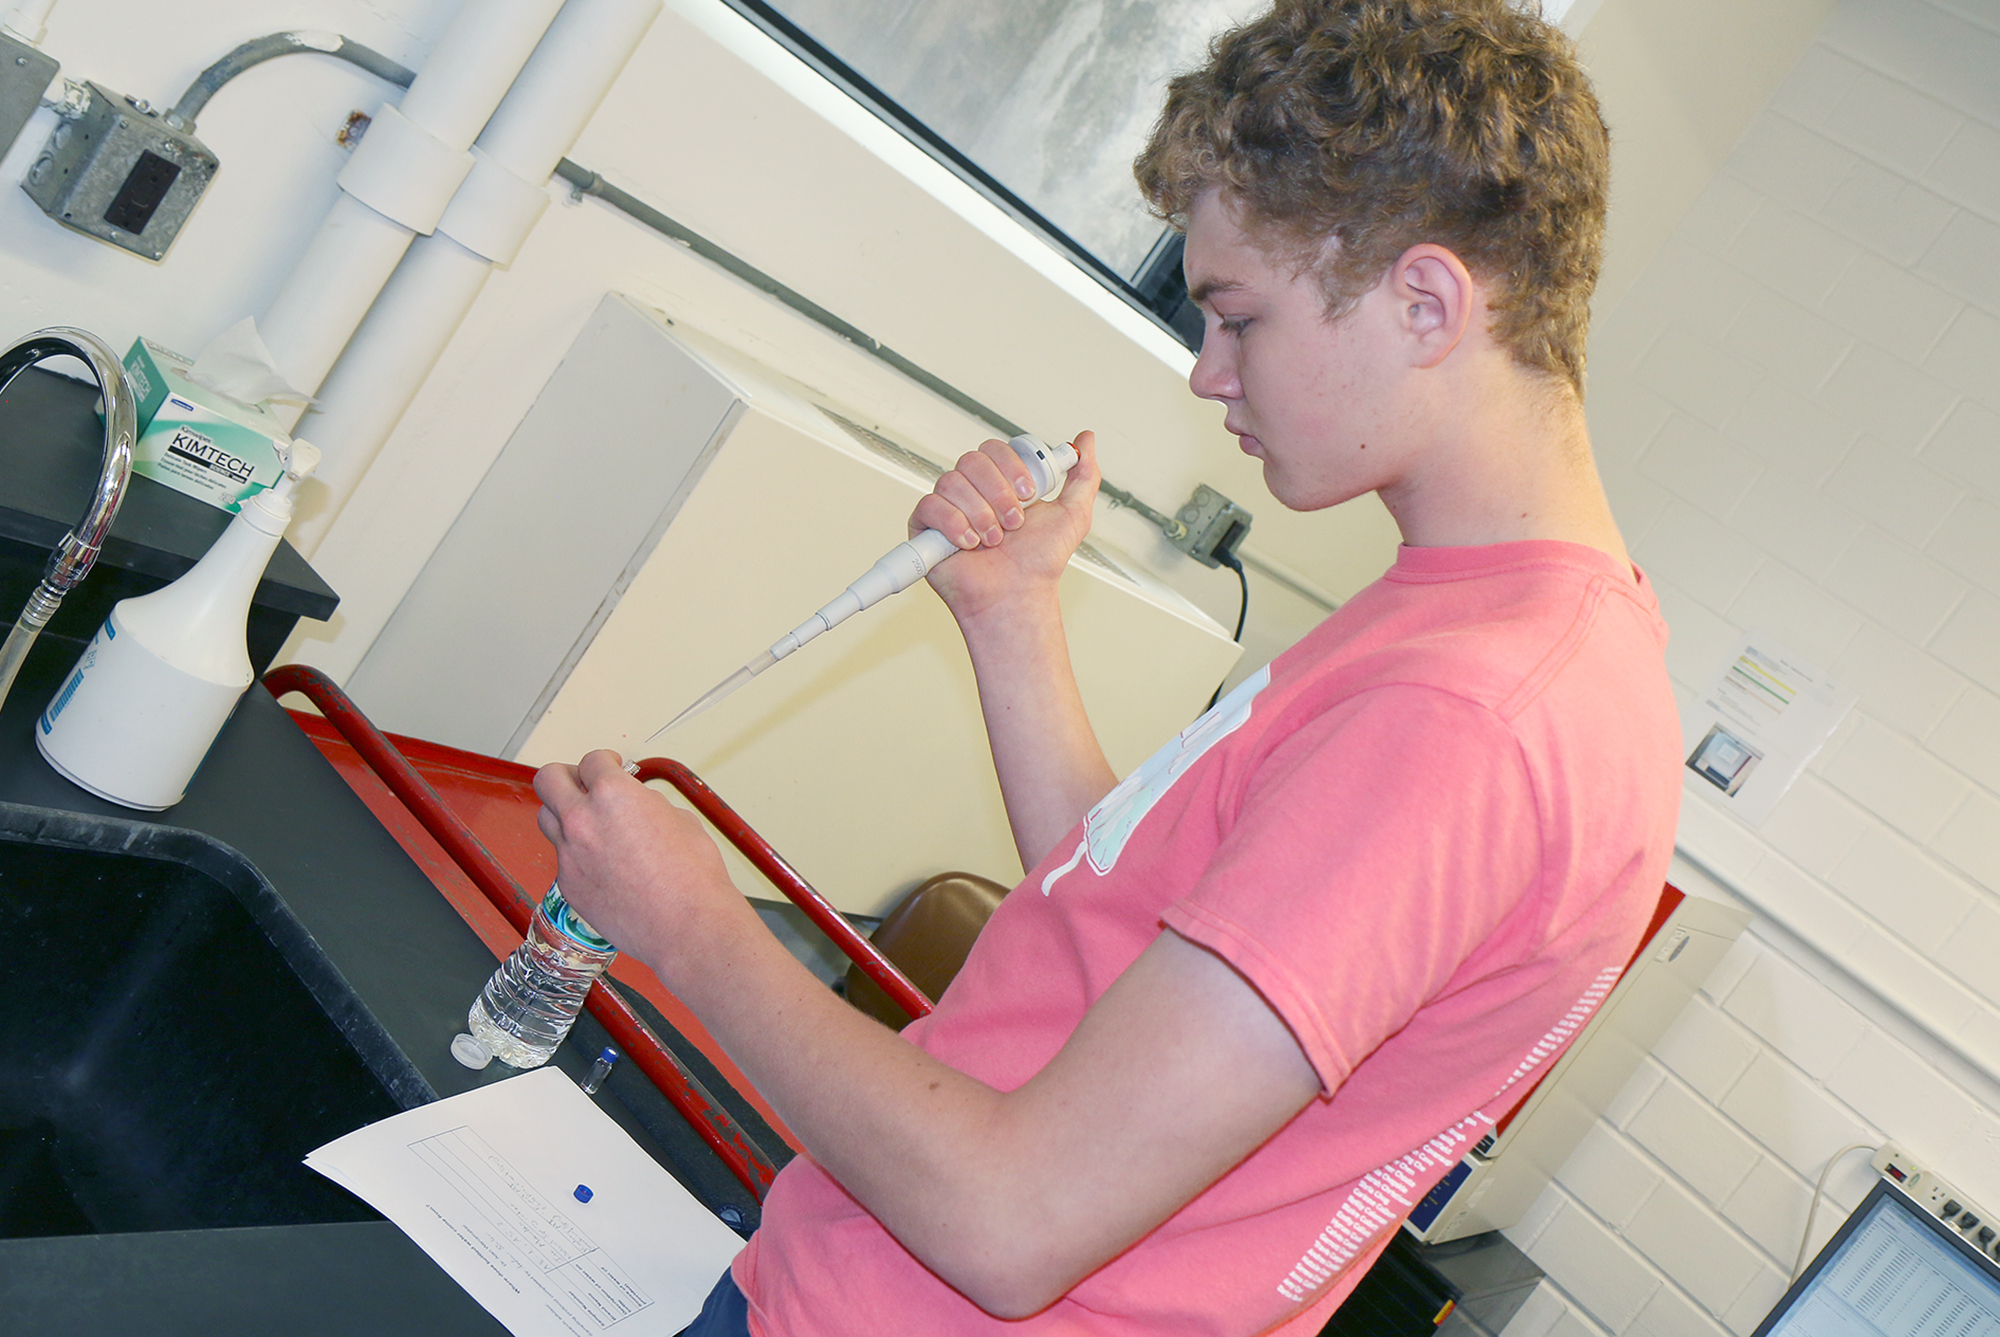 Student stands at a counter using a large pipette.